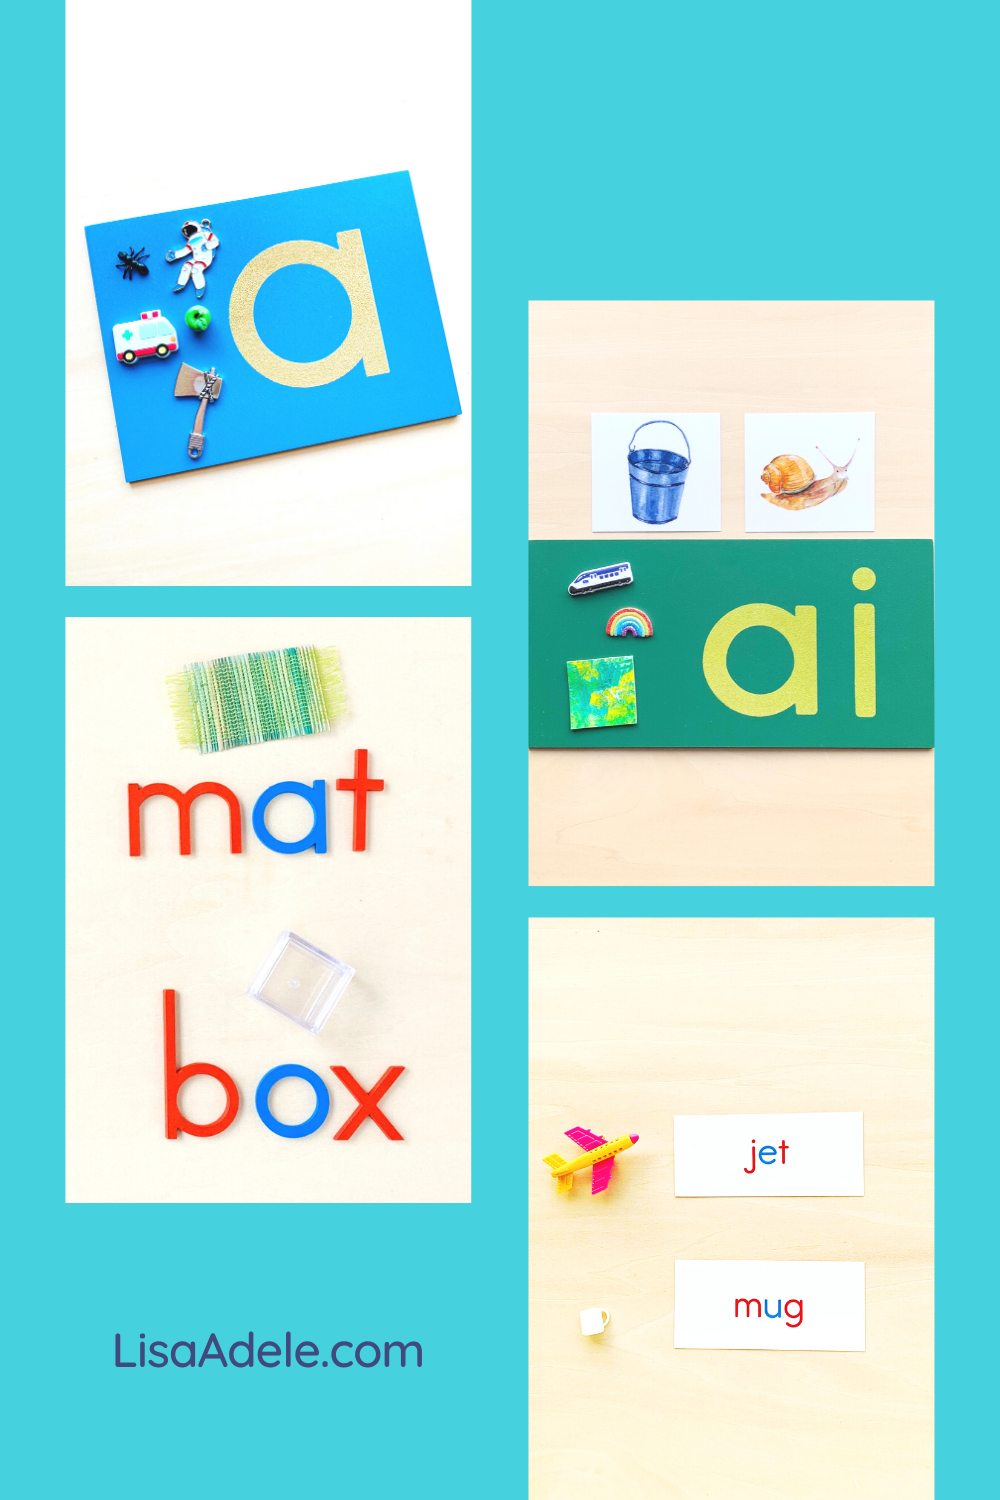 Montessori Language Objects Set for Teaching Phonics at Home